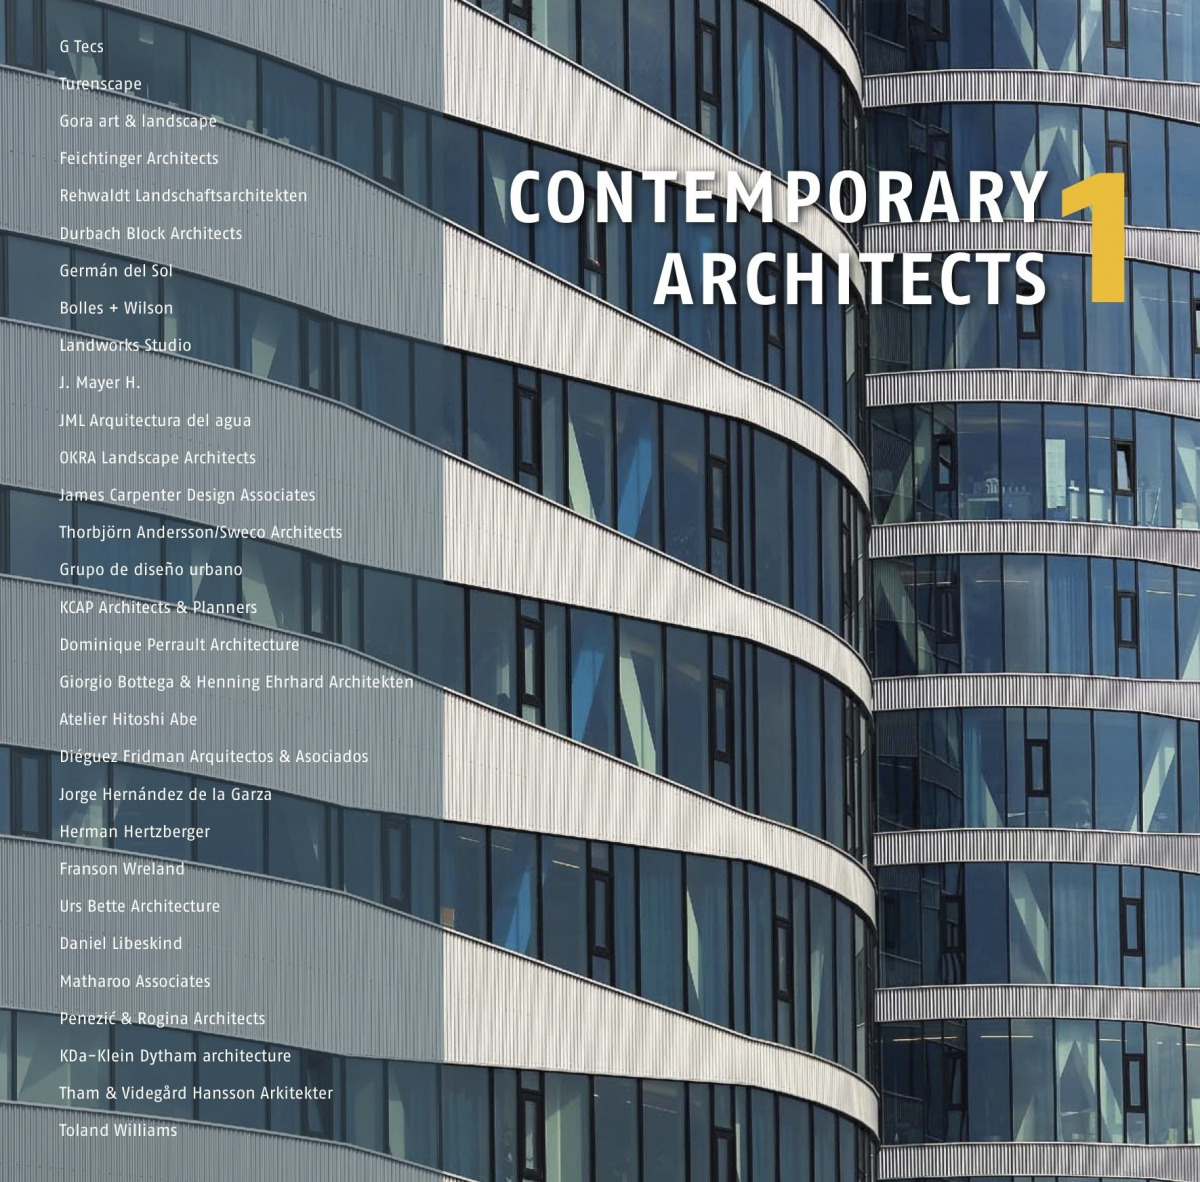 Contemporary architects 1 9788499362779